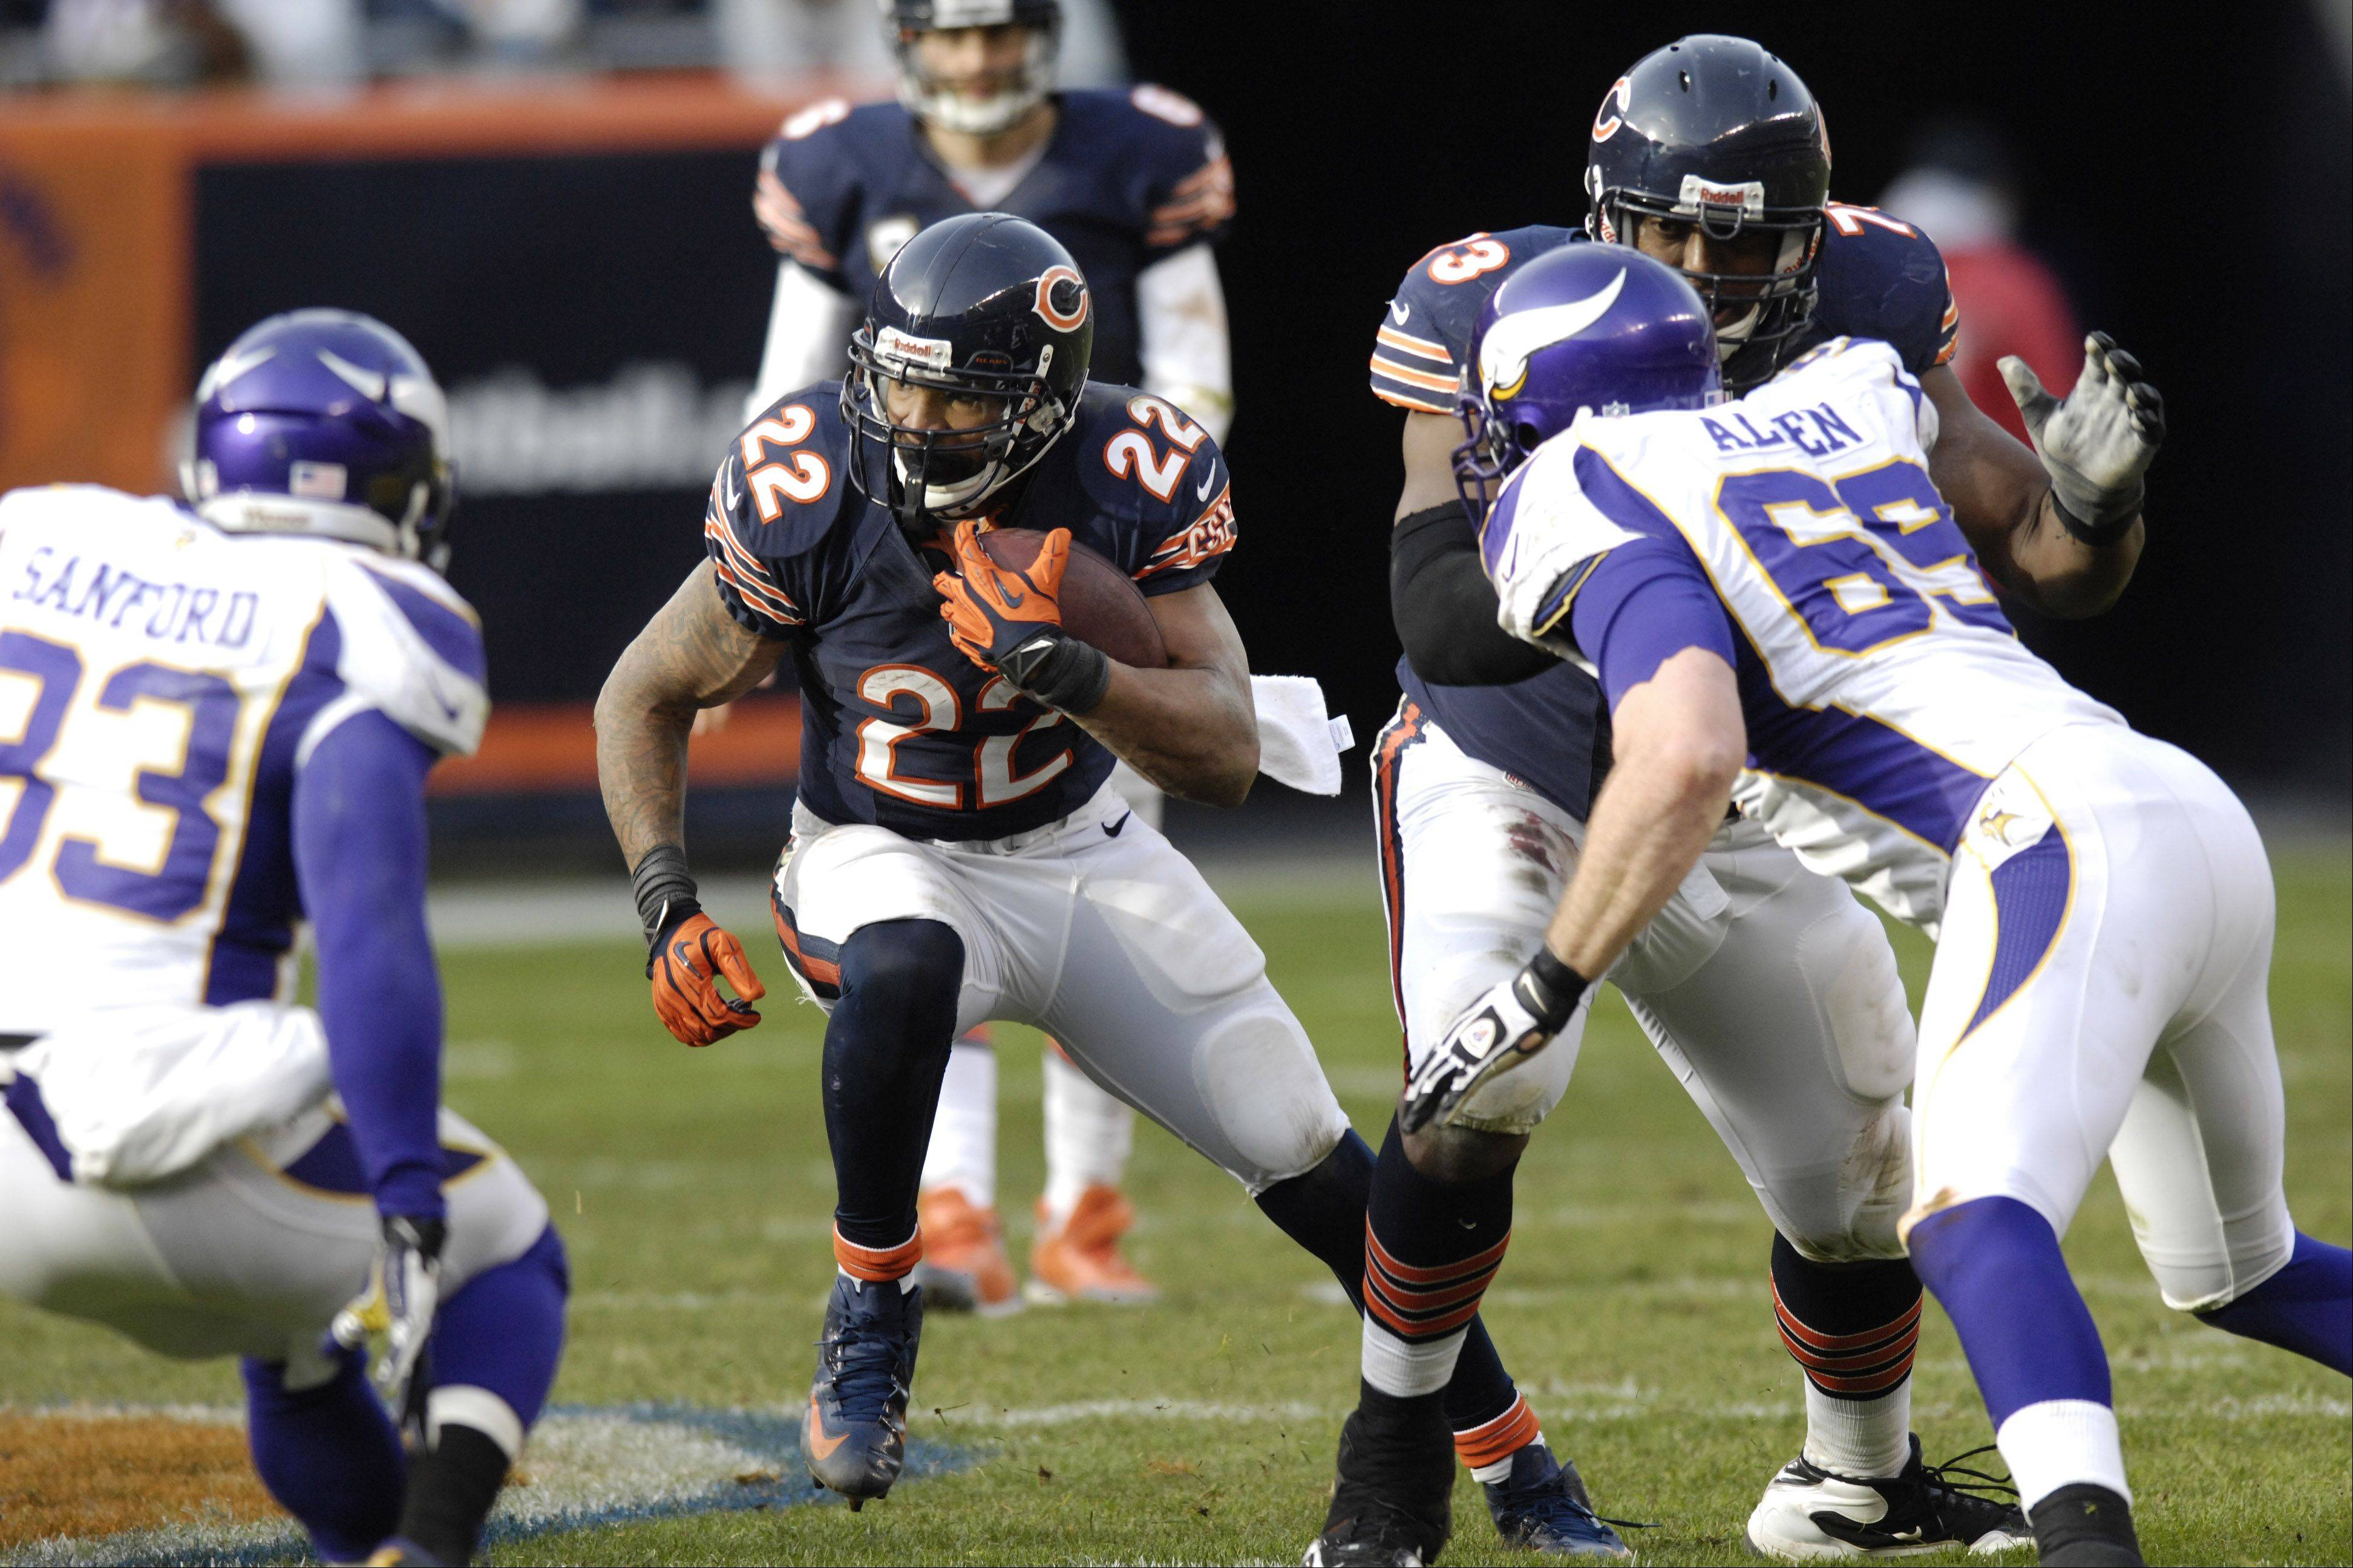 Chicago Bears running back Matt Forte carries the ball against Minnesota Vikings on a play that was initially ruled a fumble and a subsequent Vikings touchdown during the third quarter at Soldier Field Sunday. The play was called back on after review.